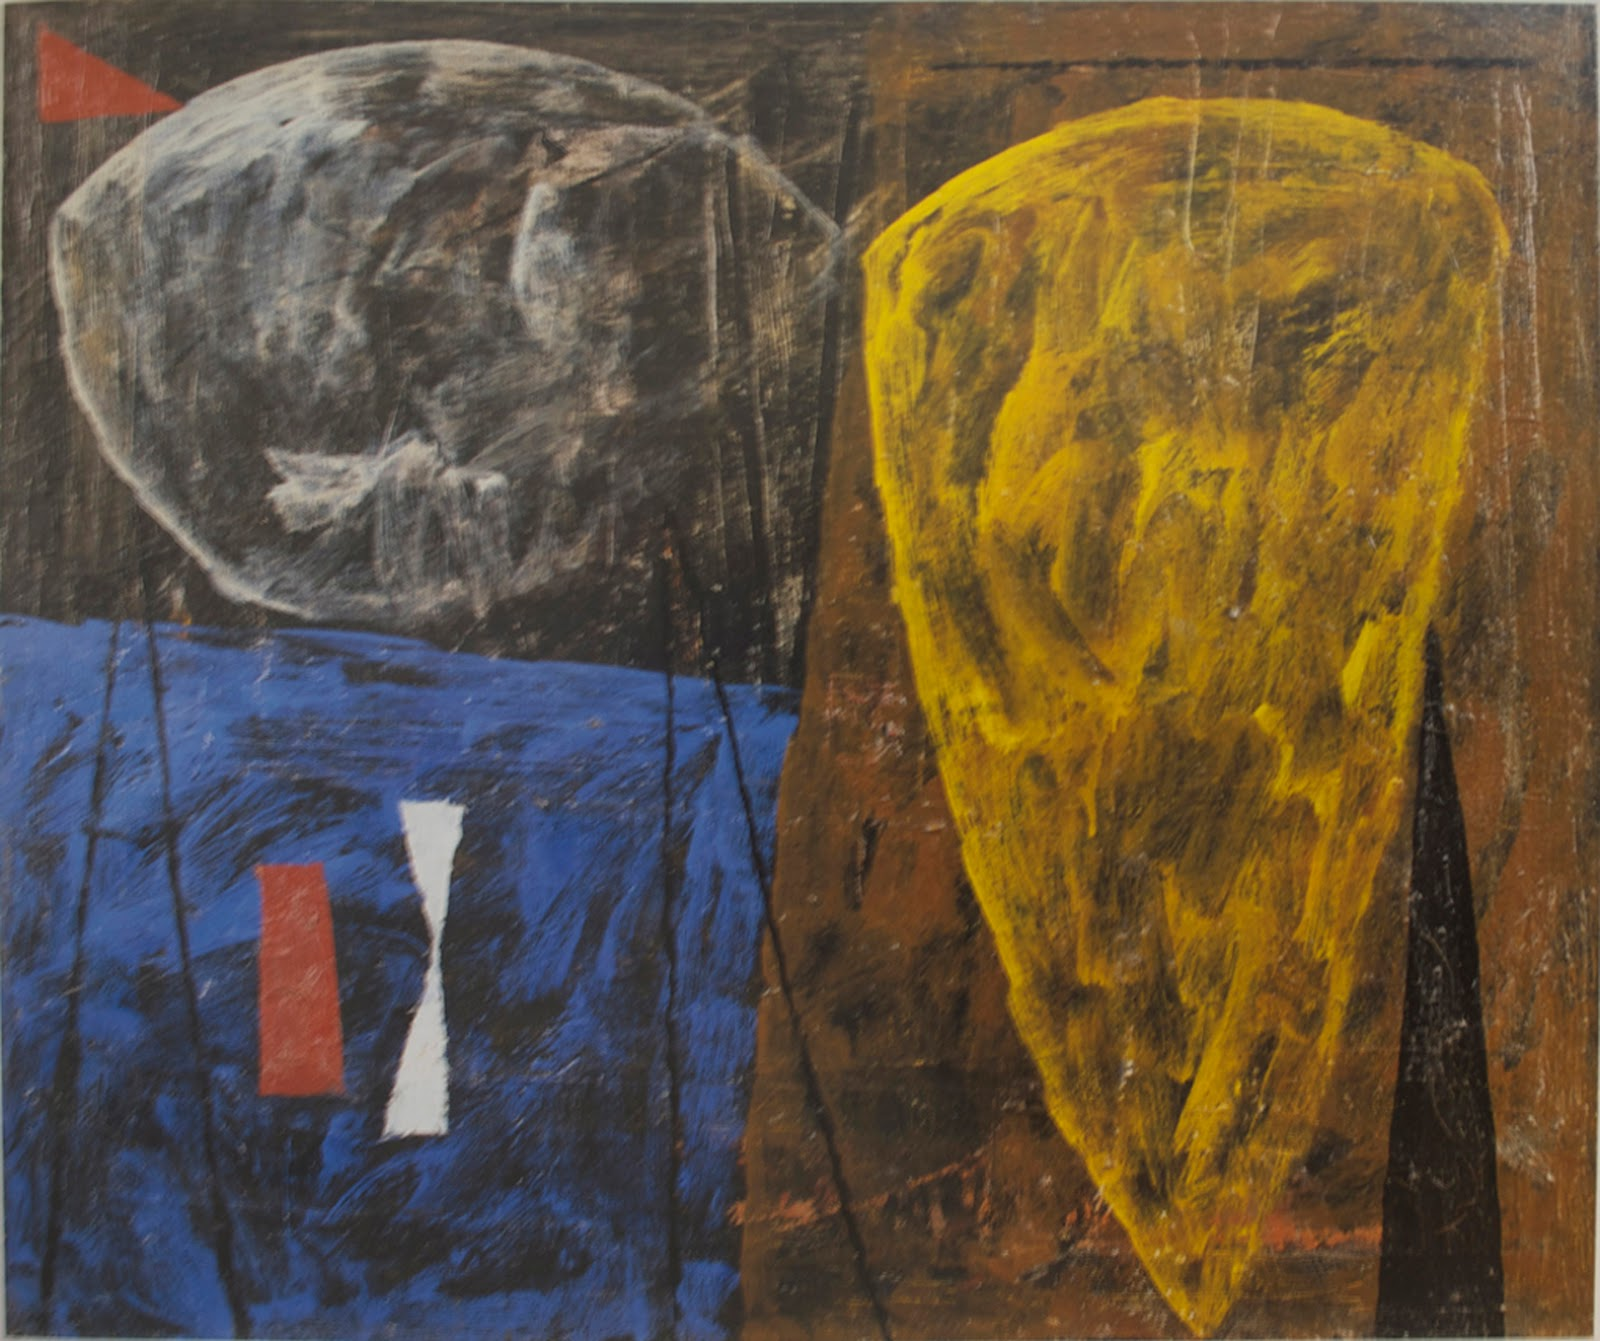 Joe joseph stefanelli american abstract expressionist